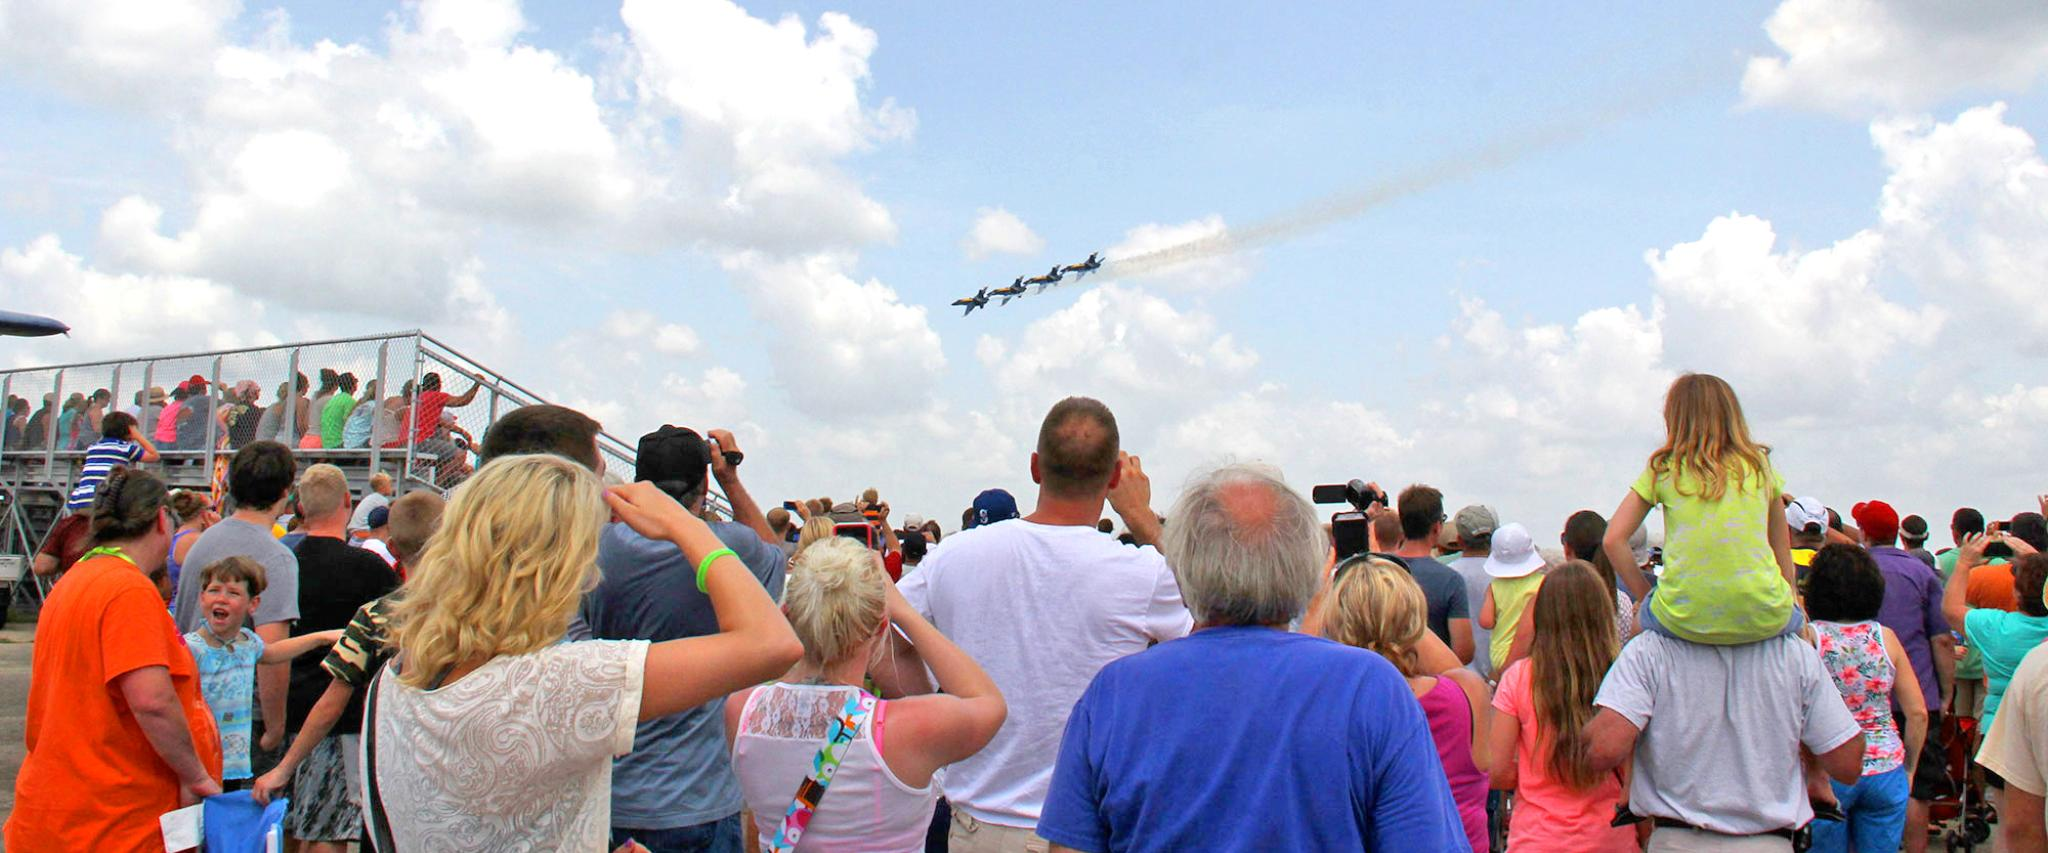 Audience watches Blue Angels Practice